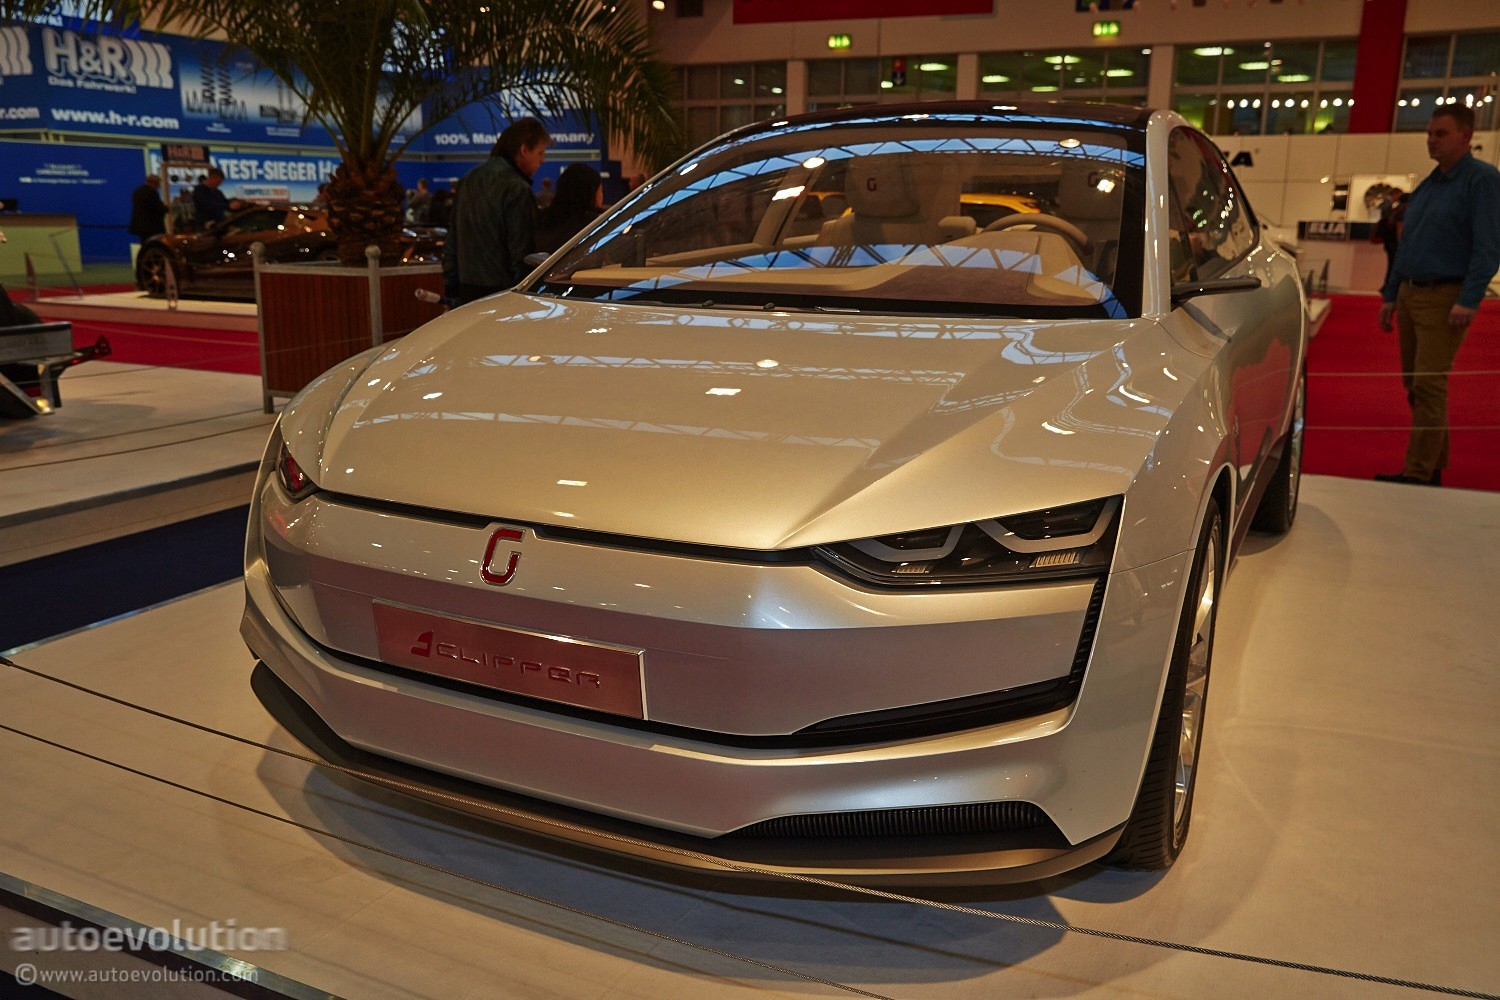 Design Automobile Essen 2014 Italdesign Giugiaro Clipper Concept Tows A Ducati